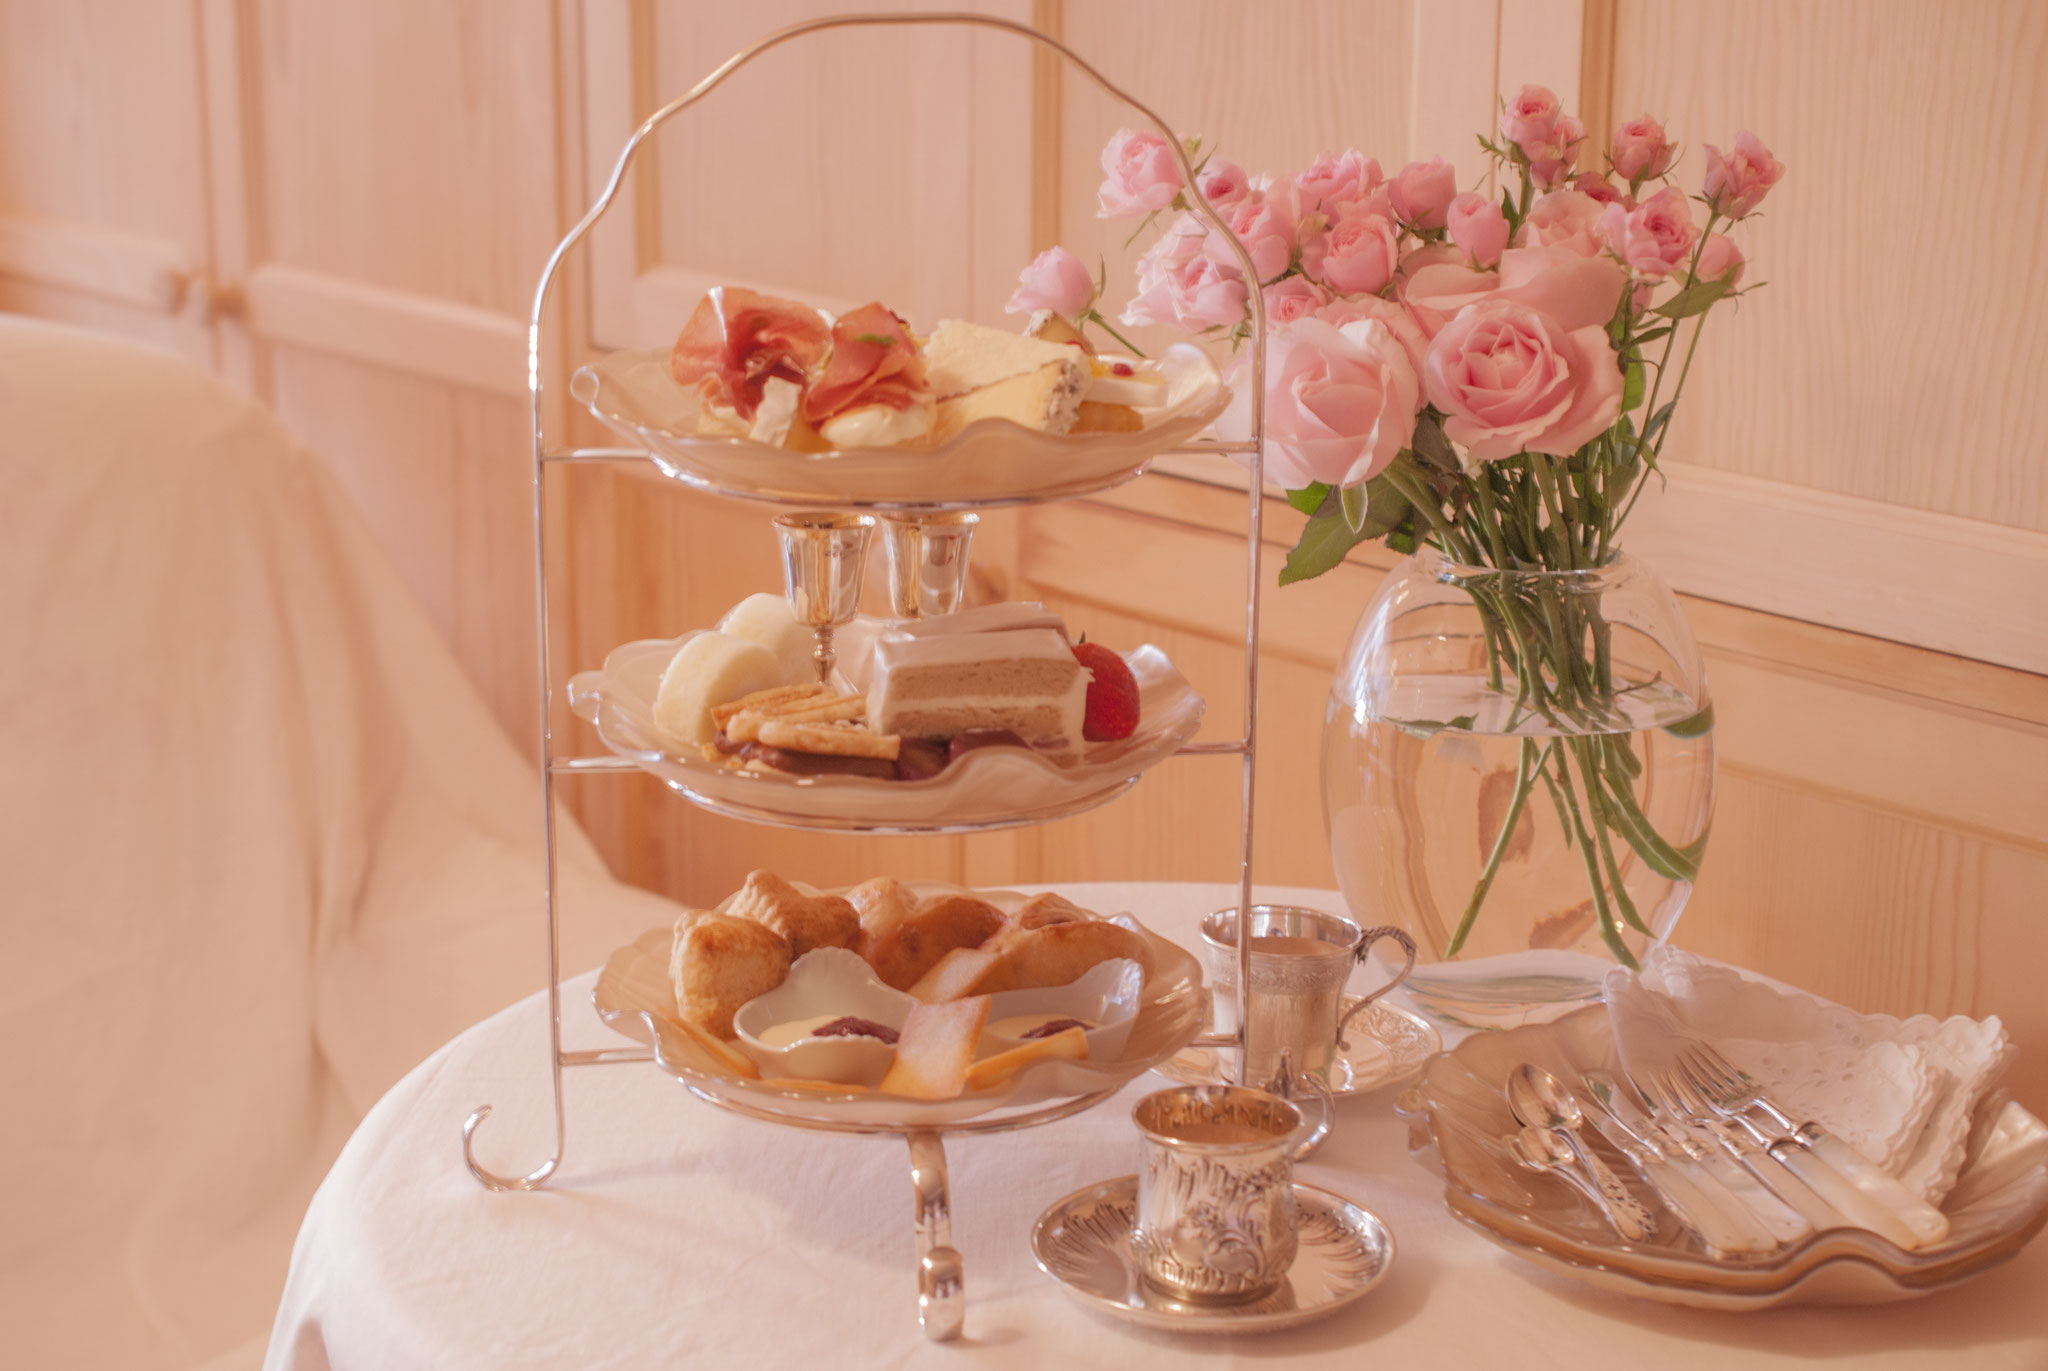 Classic Afternoon Tea 201809, MENU, Fleur*Fleur*